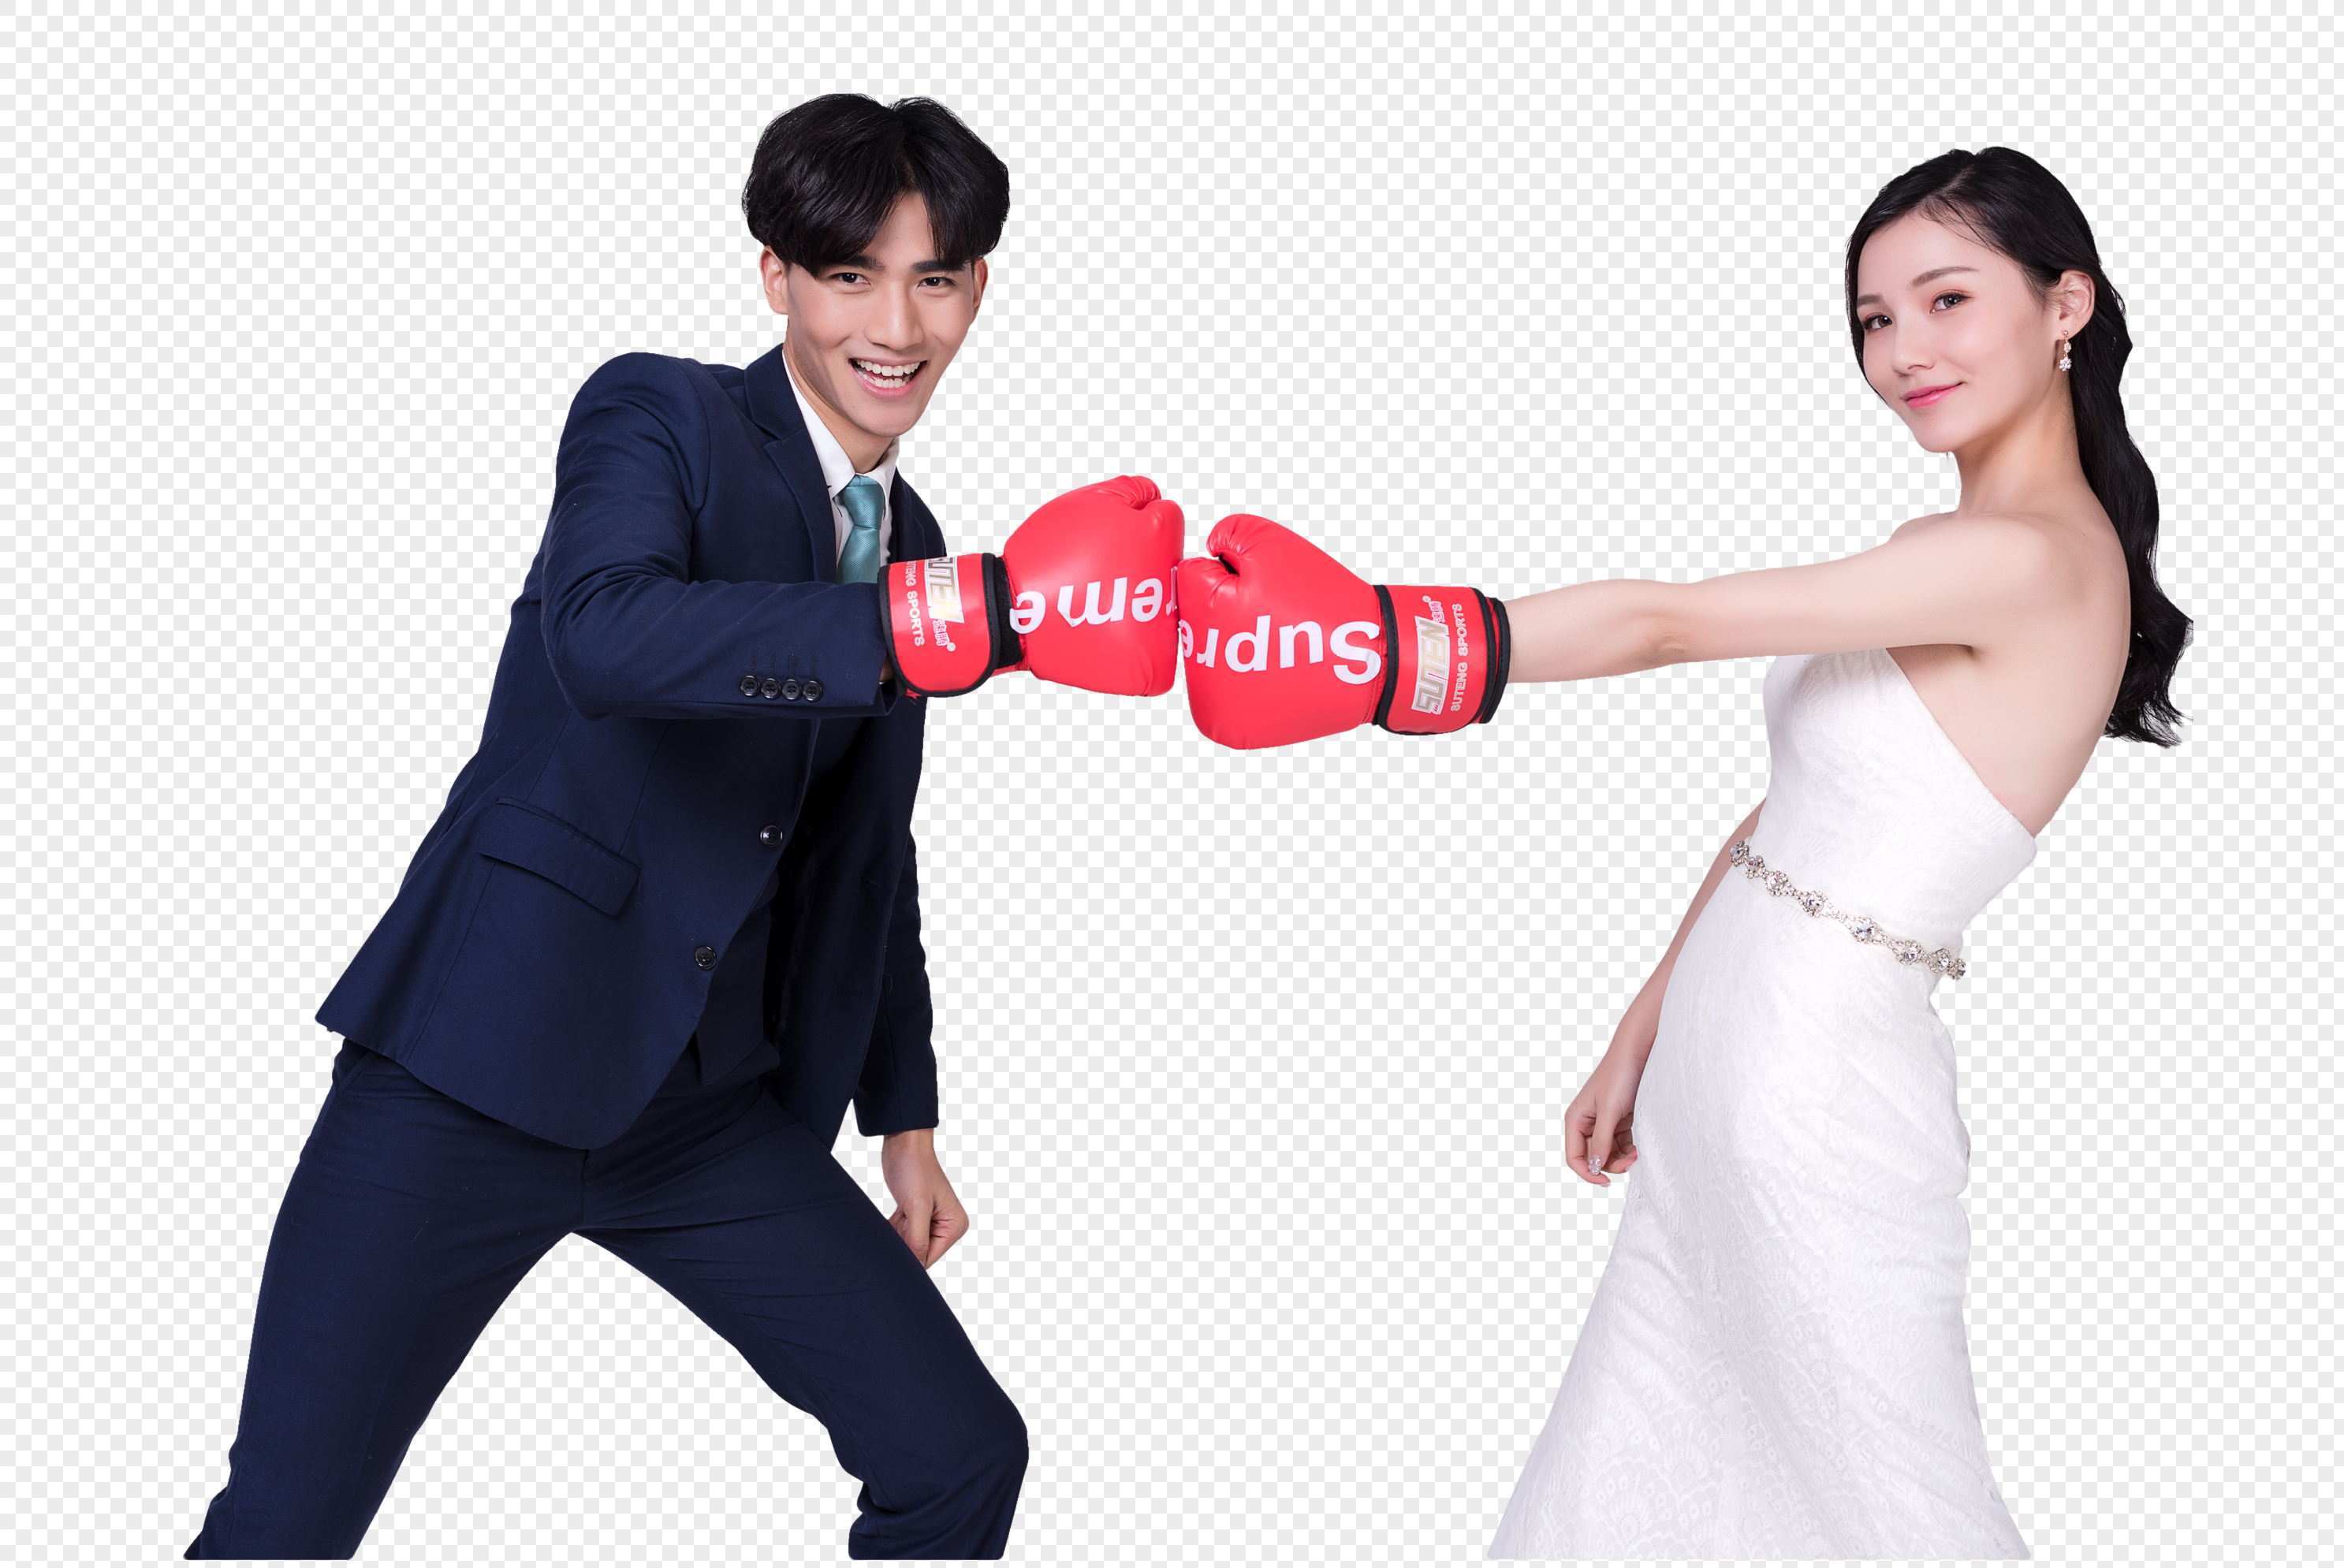 Lovers\' wedding gown boxing gloves png image_picture free download ...